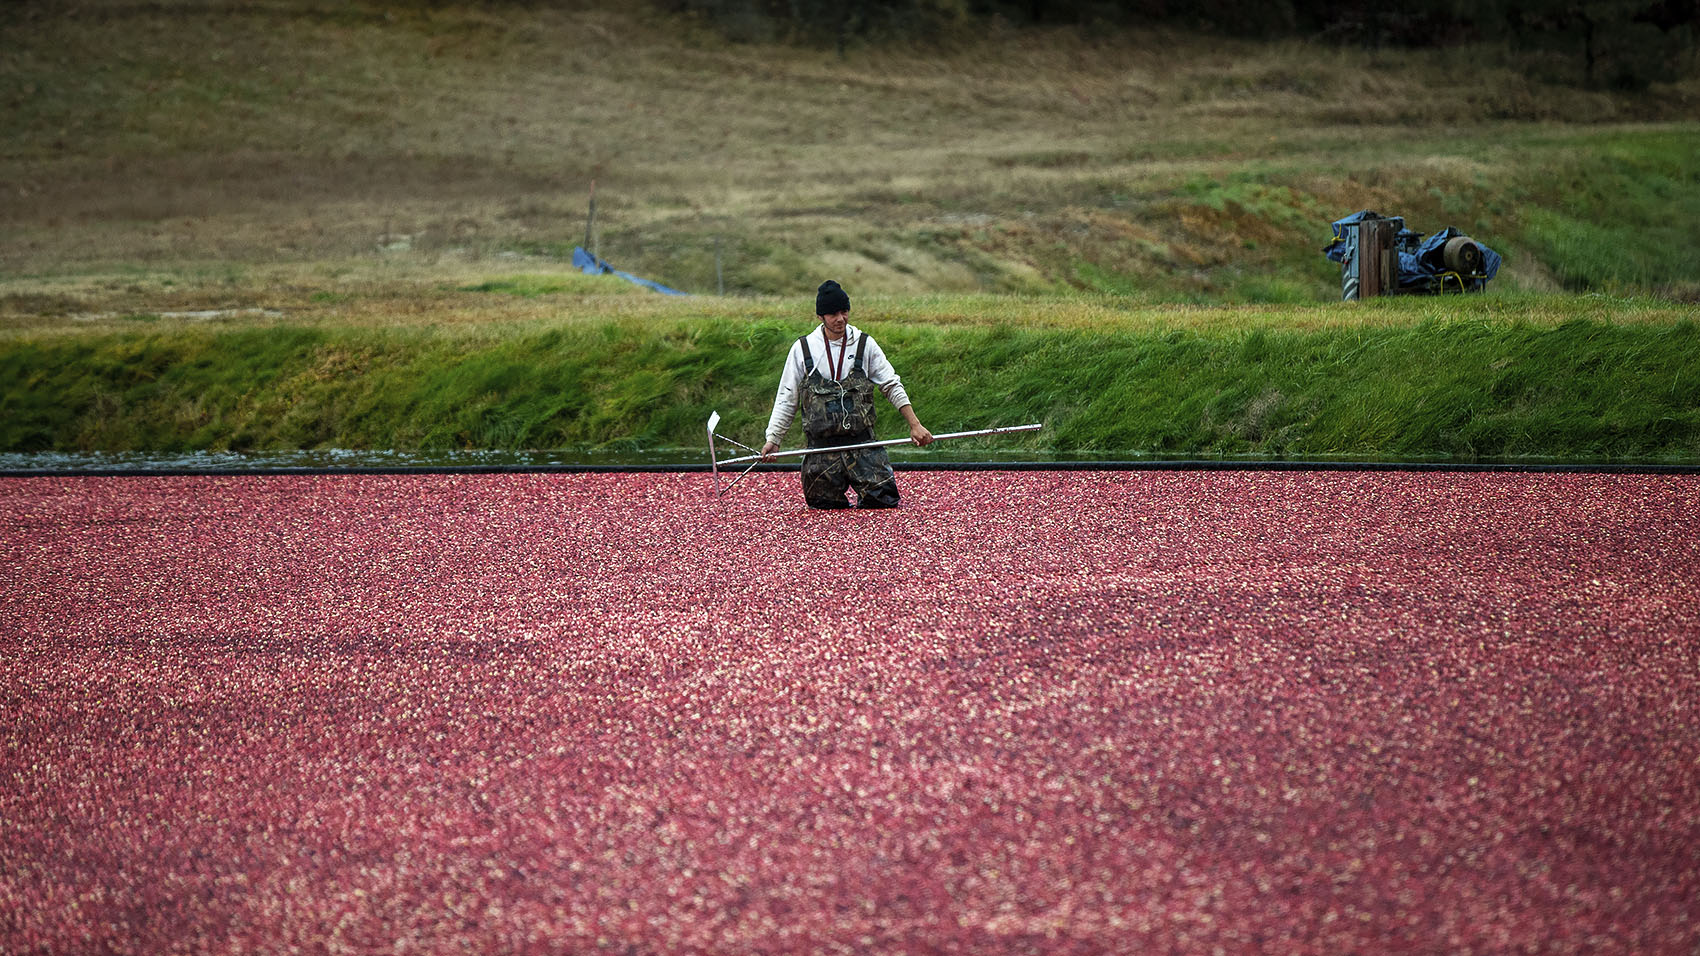 A cranberry harvester stands in a sea of cranberries at Pinnacle Bog in Plymouth. (Jesse Costa/WBUR)